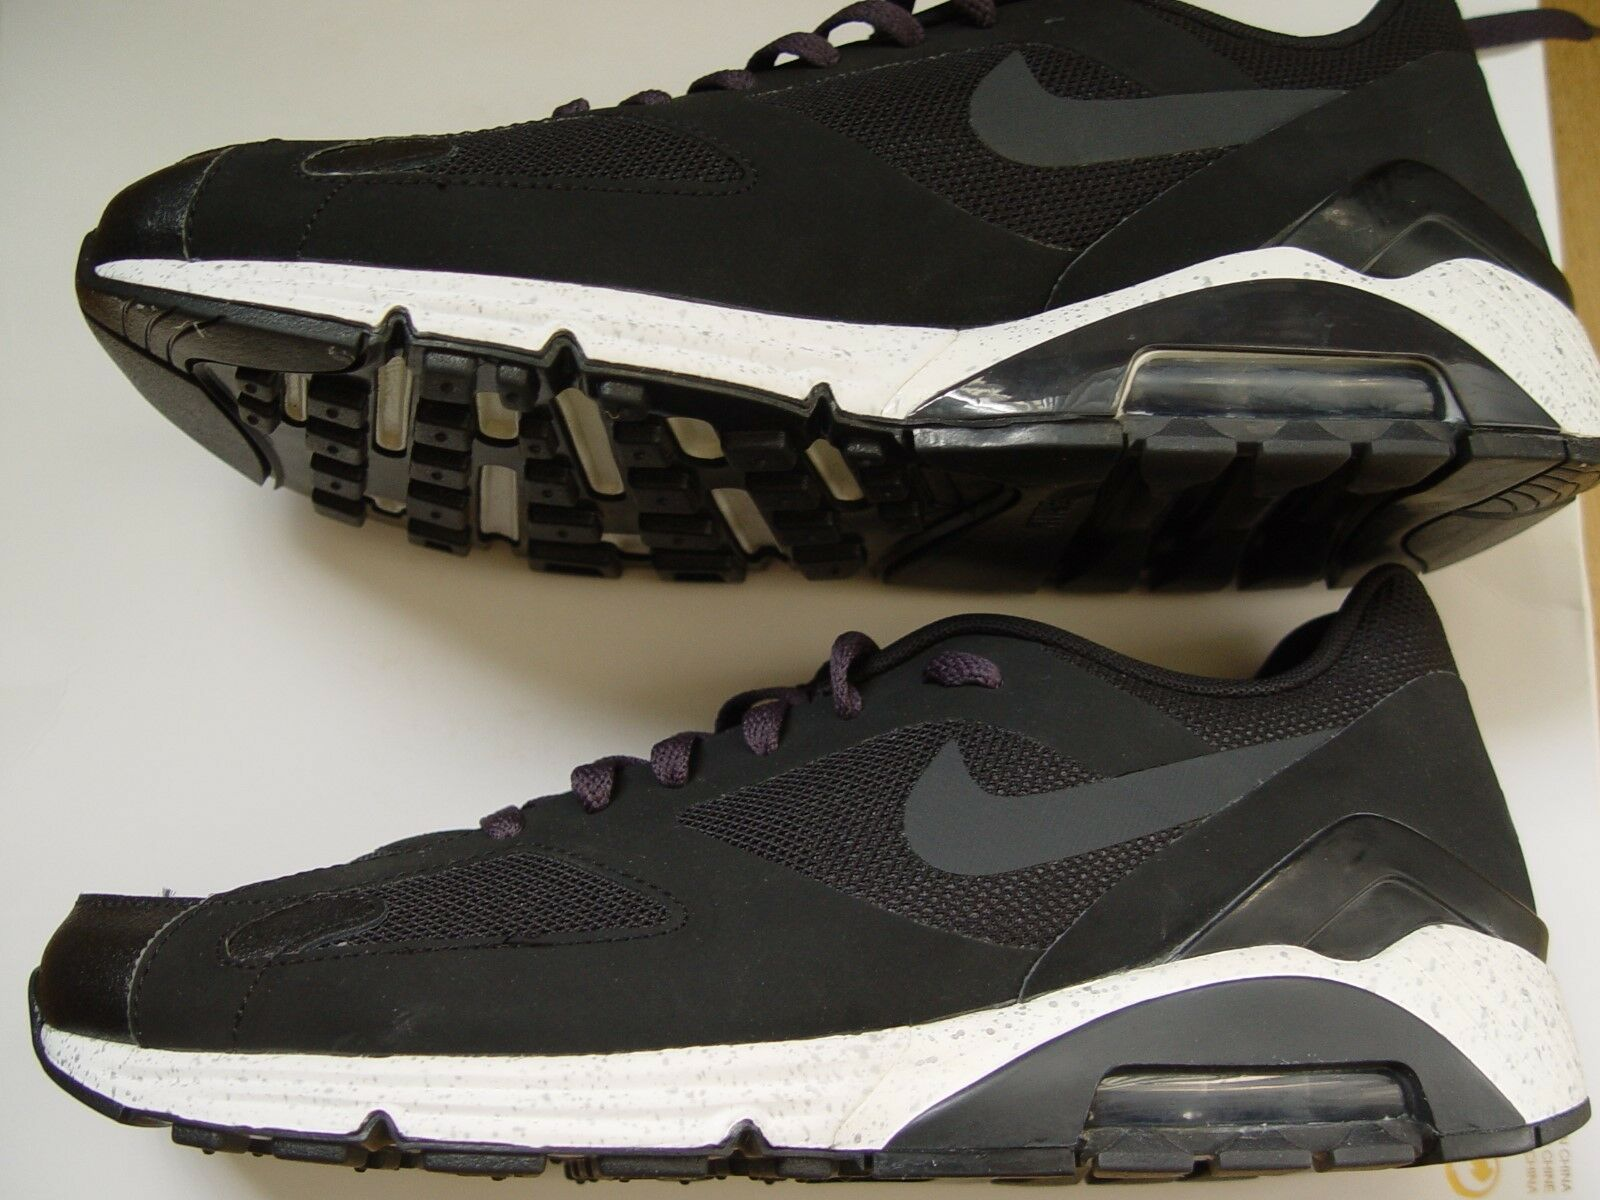 NEW NIKE AIR MAX 180 OREO 615589-001 SIZE 44. ONLY PAIR ON EBAY. VAPORMAX.